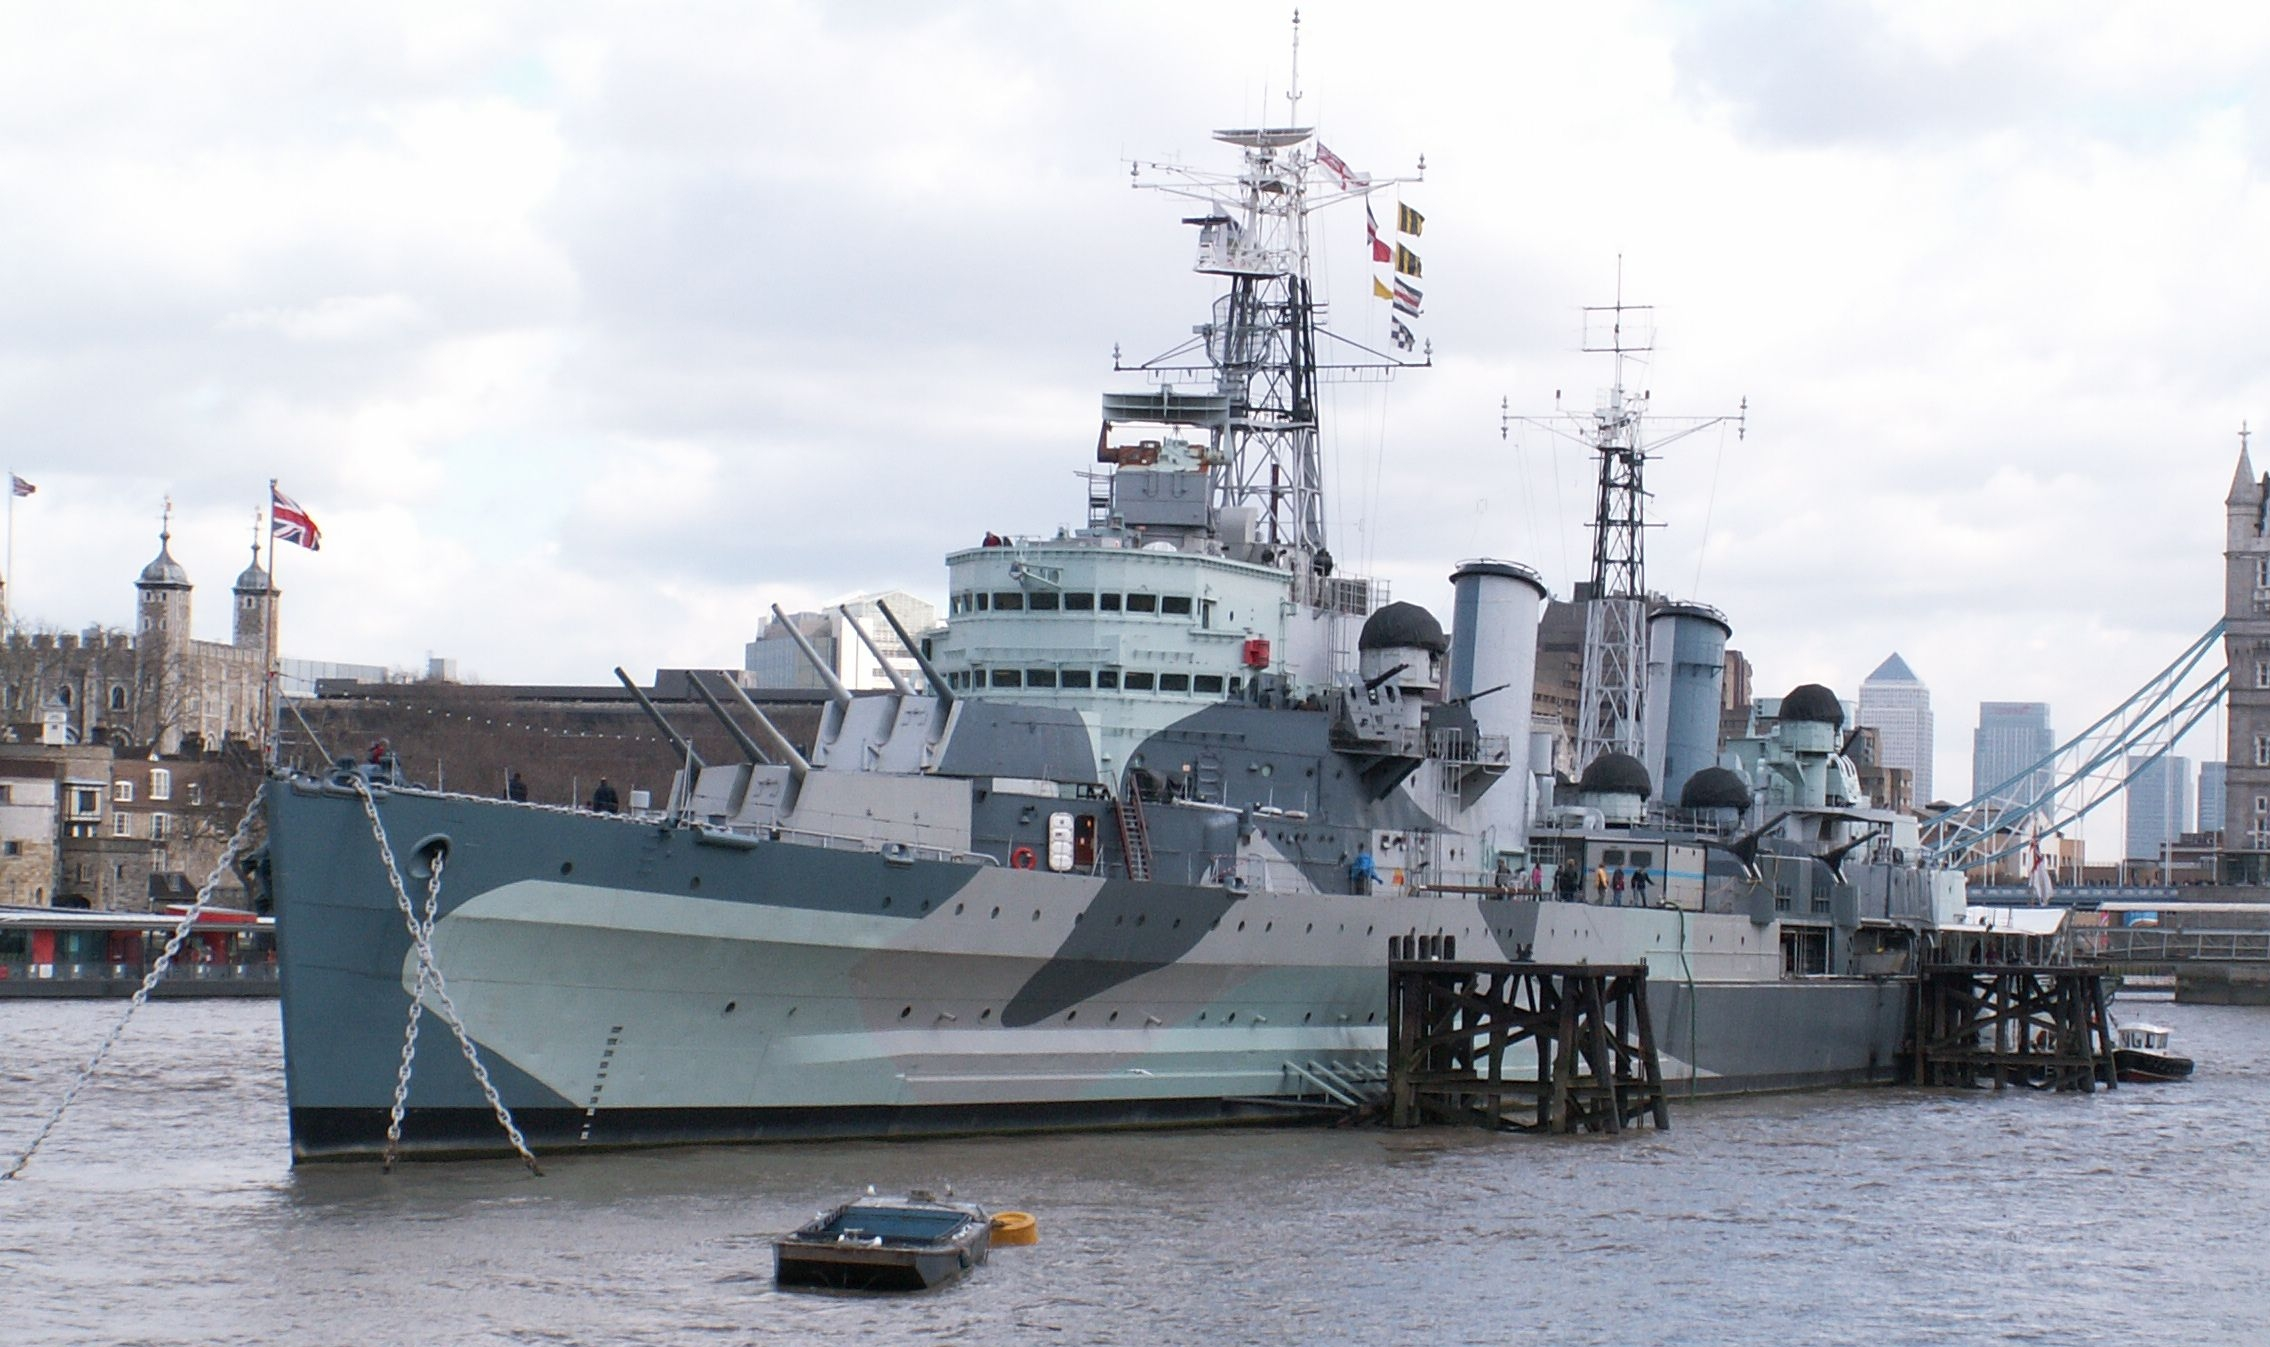 flying camera systems with Battle Stations 10 Interesting Facts Figures Hms Belfast Might Not Know on Matek F405 Aio F4 Betaflight Flight Controller W Osd Pdb besides Micro air vehicle moreover Synthetic vision system further Real Life Phoenix 402012035 moreover Invasion Of Micro Drones.